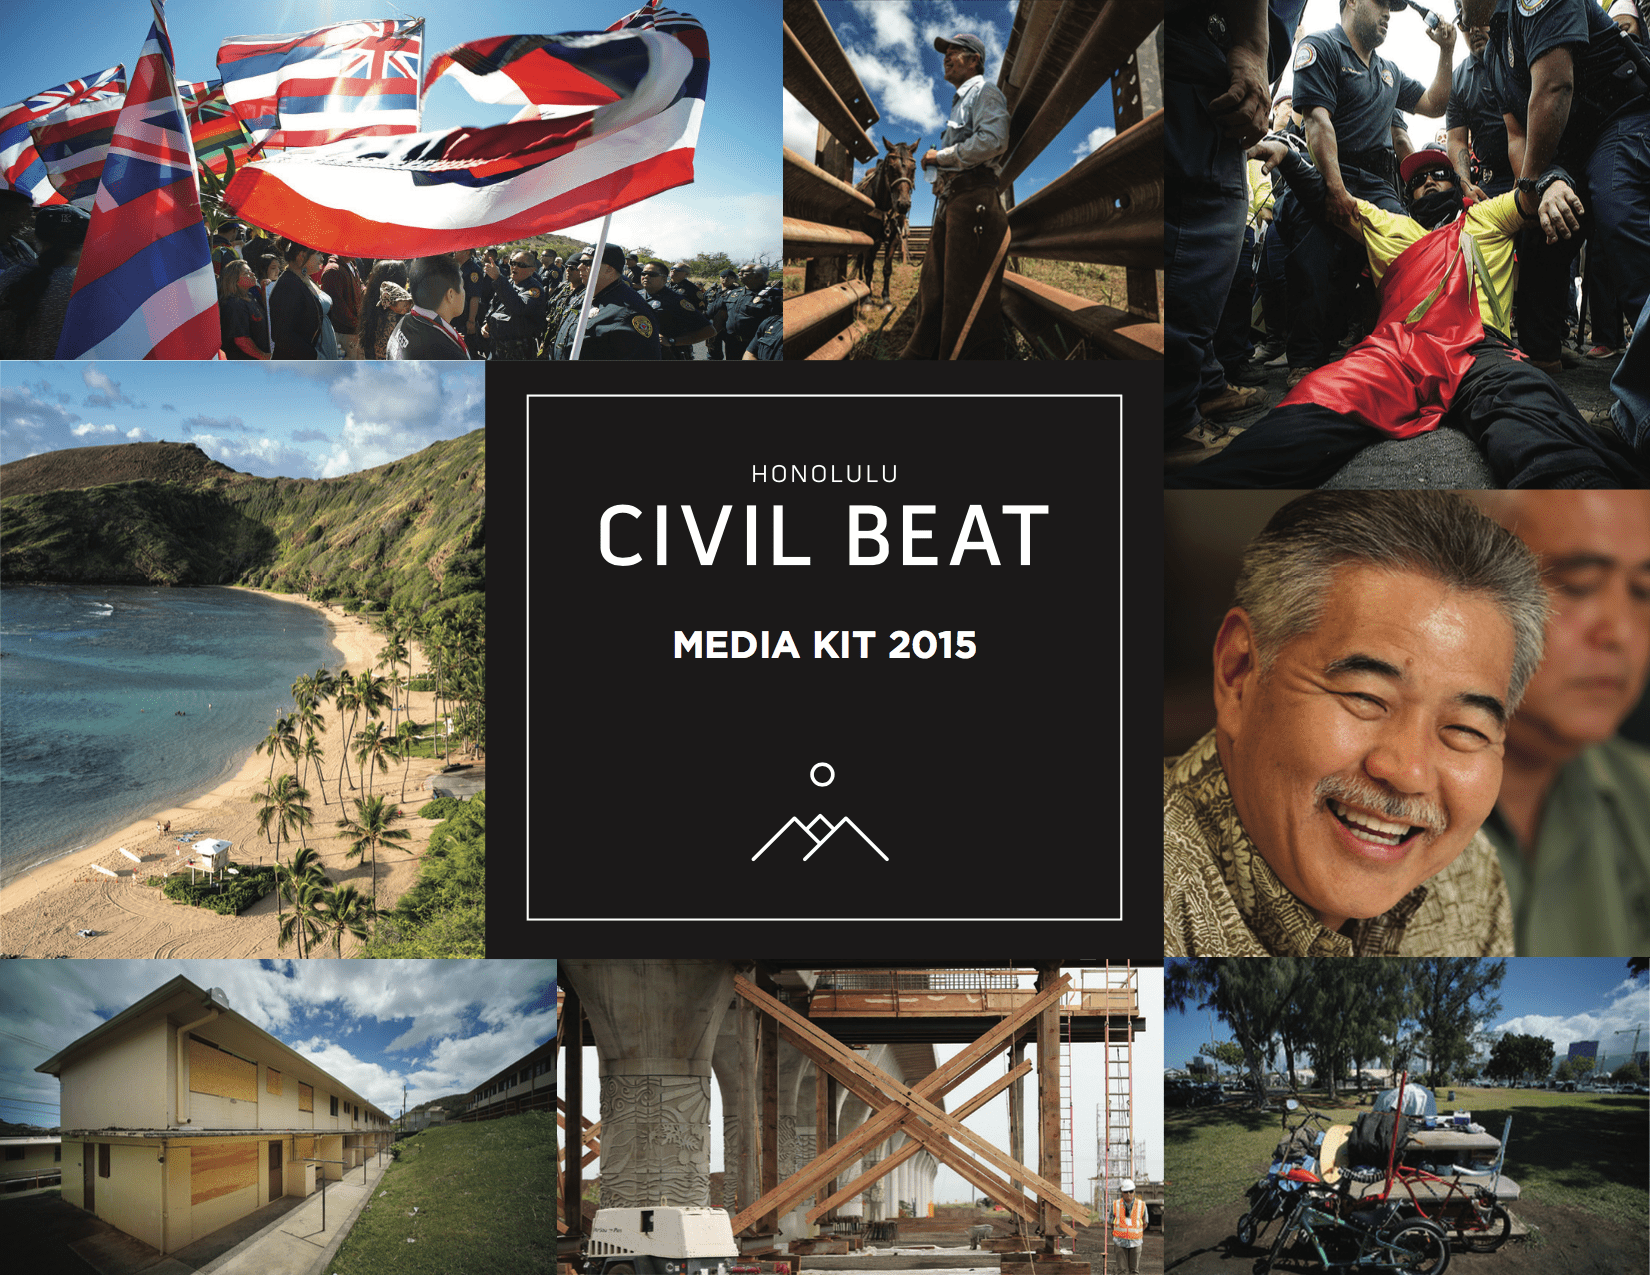 Civil Beat Media Kit 2015